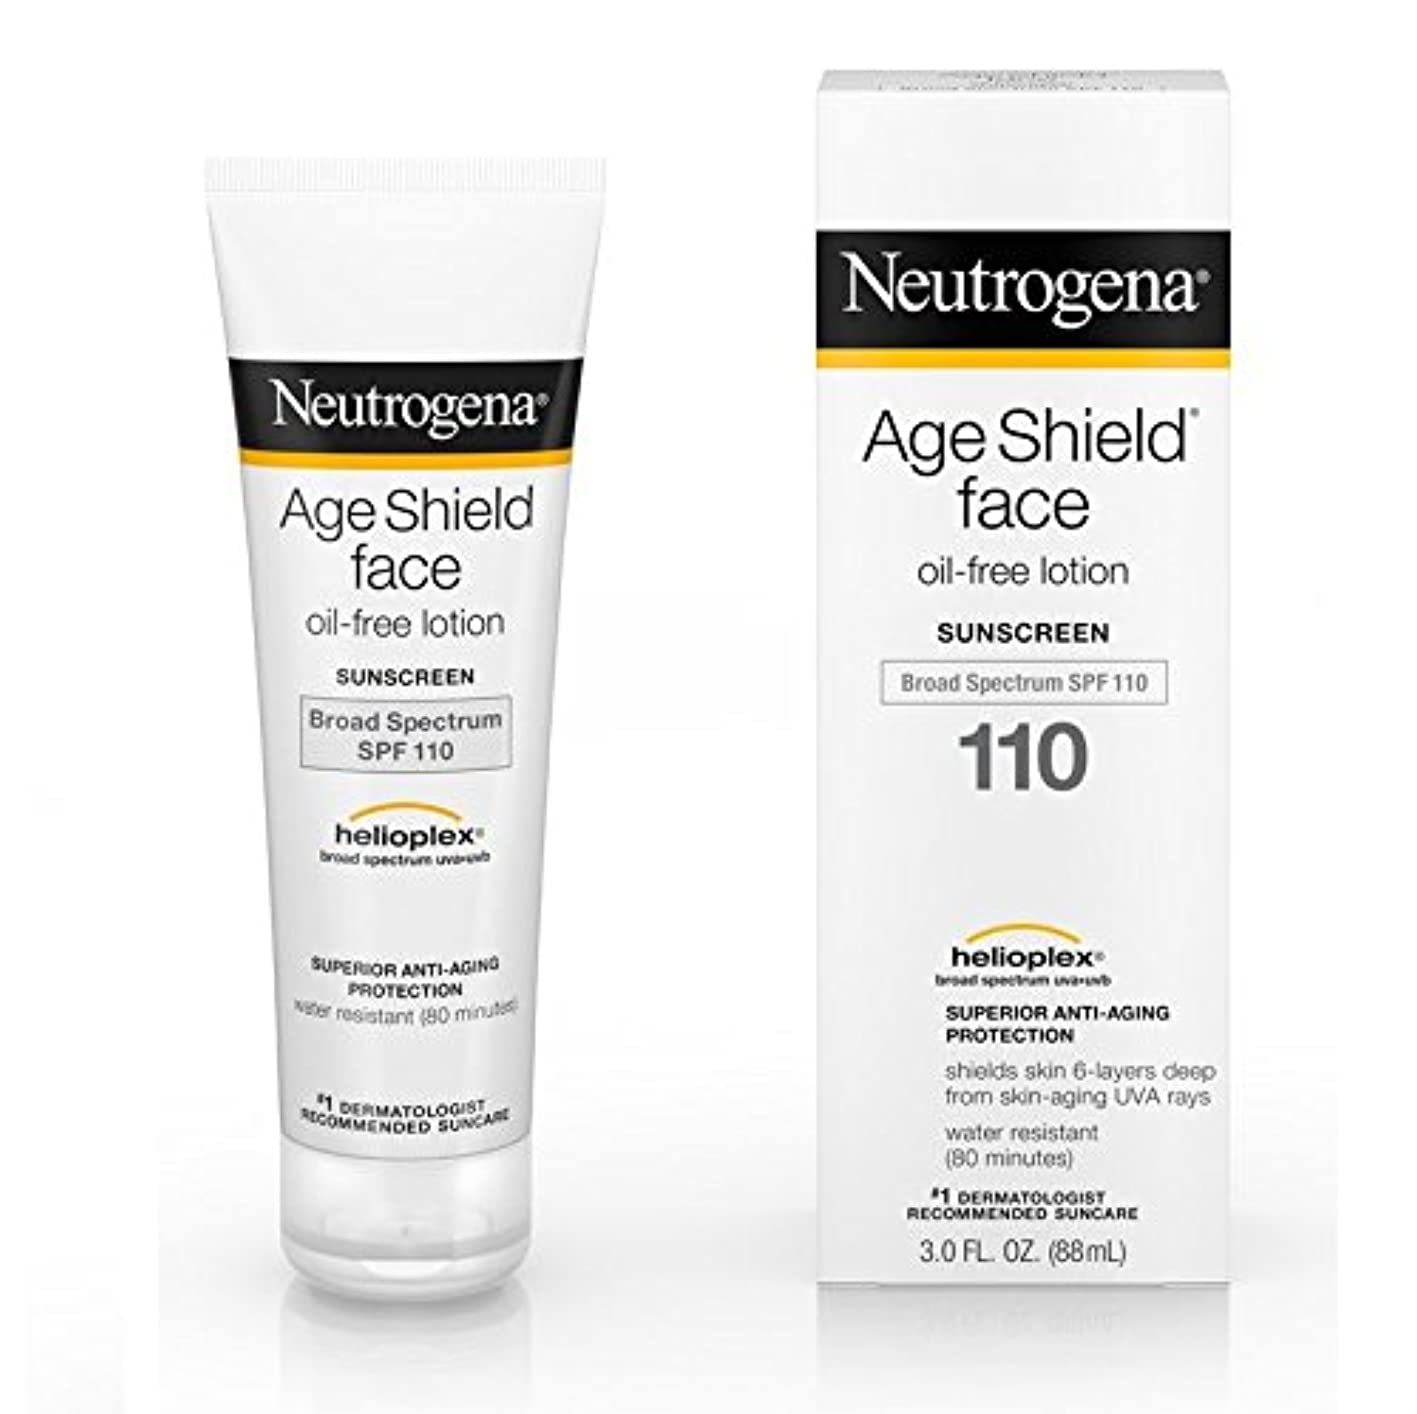 同一のヒントのスコア【海外直送品】Neutrogena Age Shield® Face Oil-Free Lotion Sunscreen Broad Spectrum SPF 110 - 3 FL OZ(88ml)